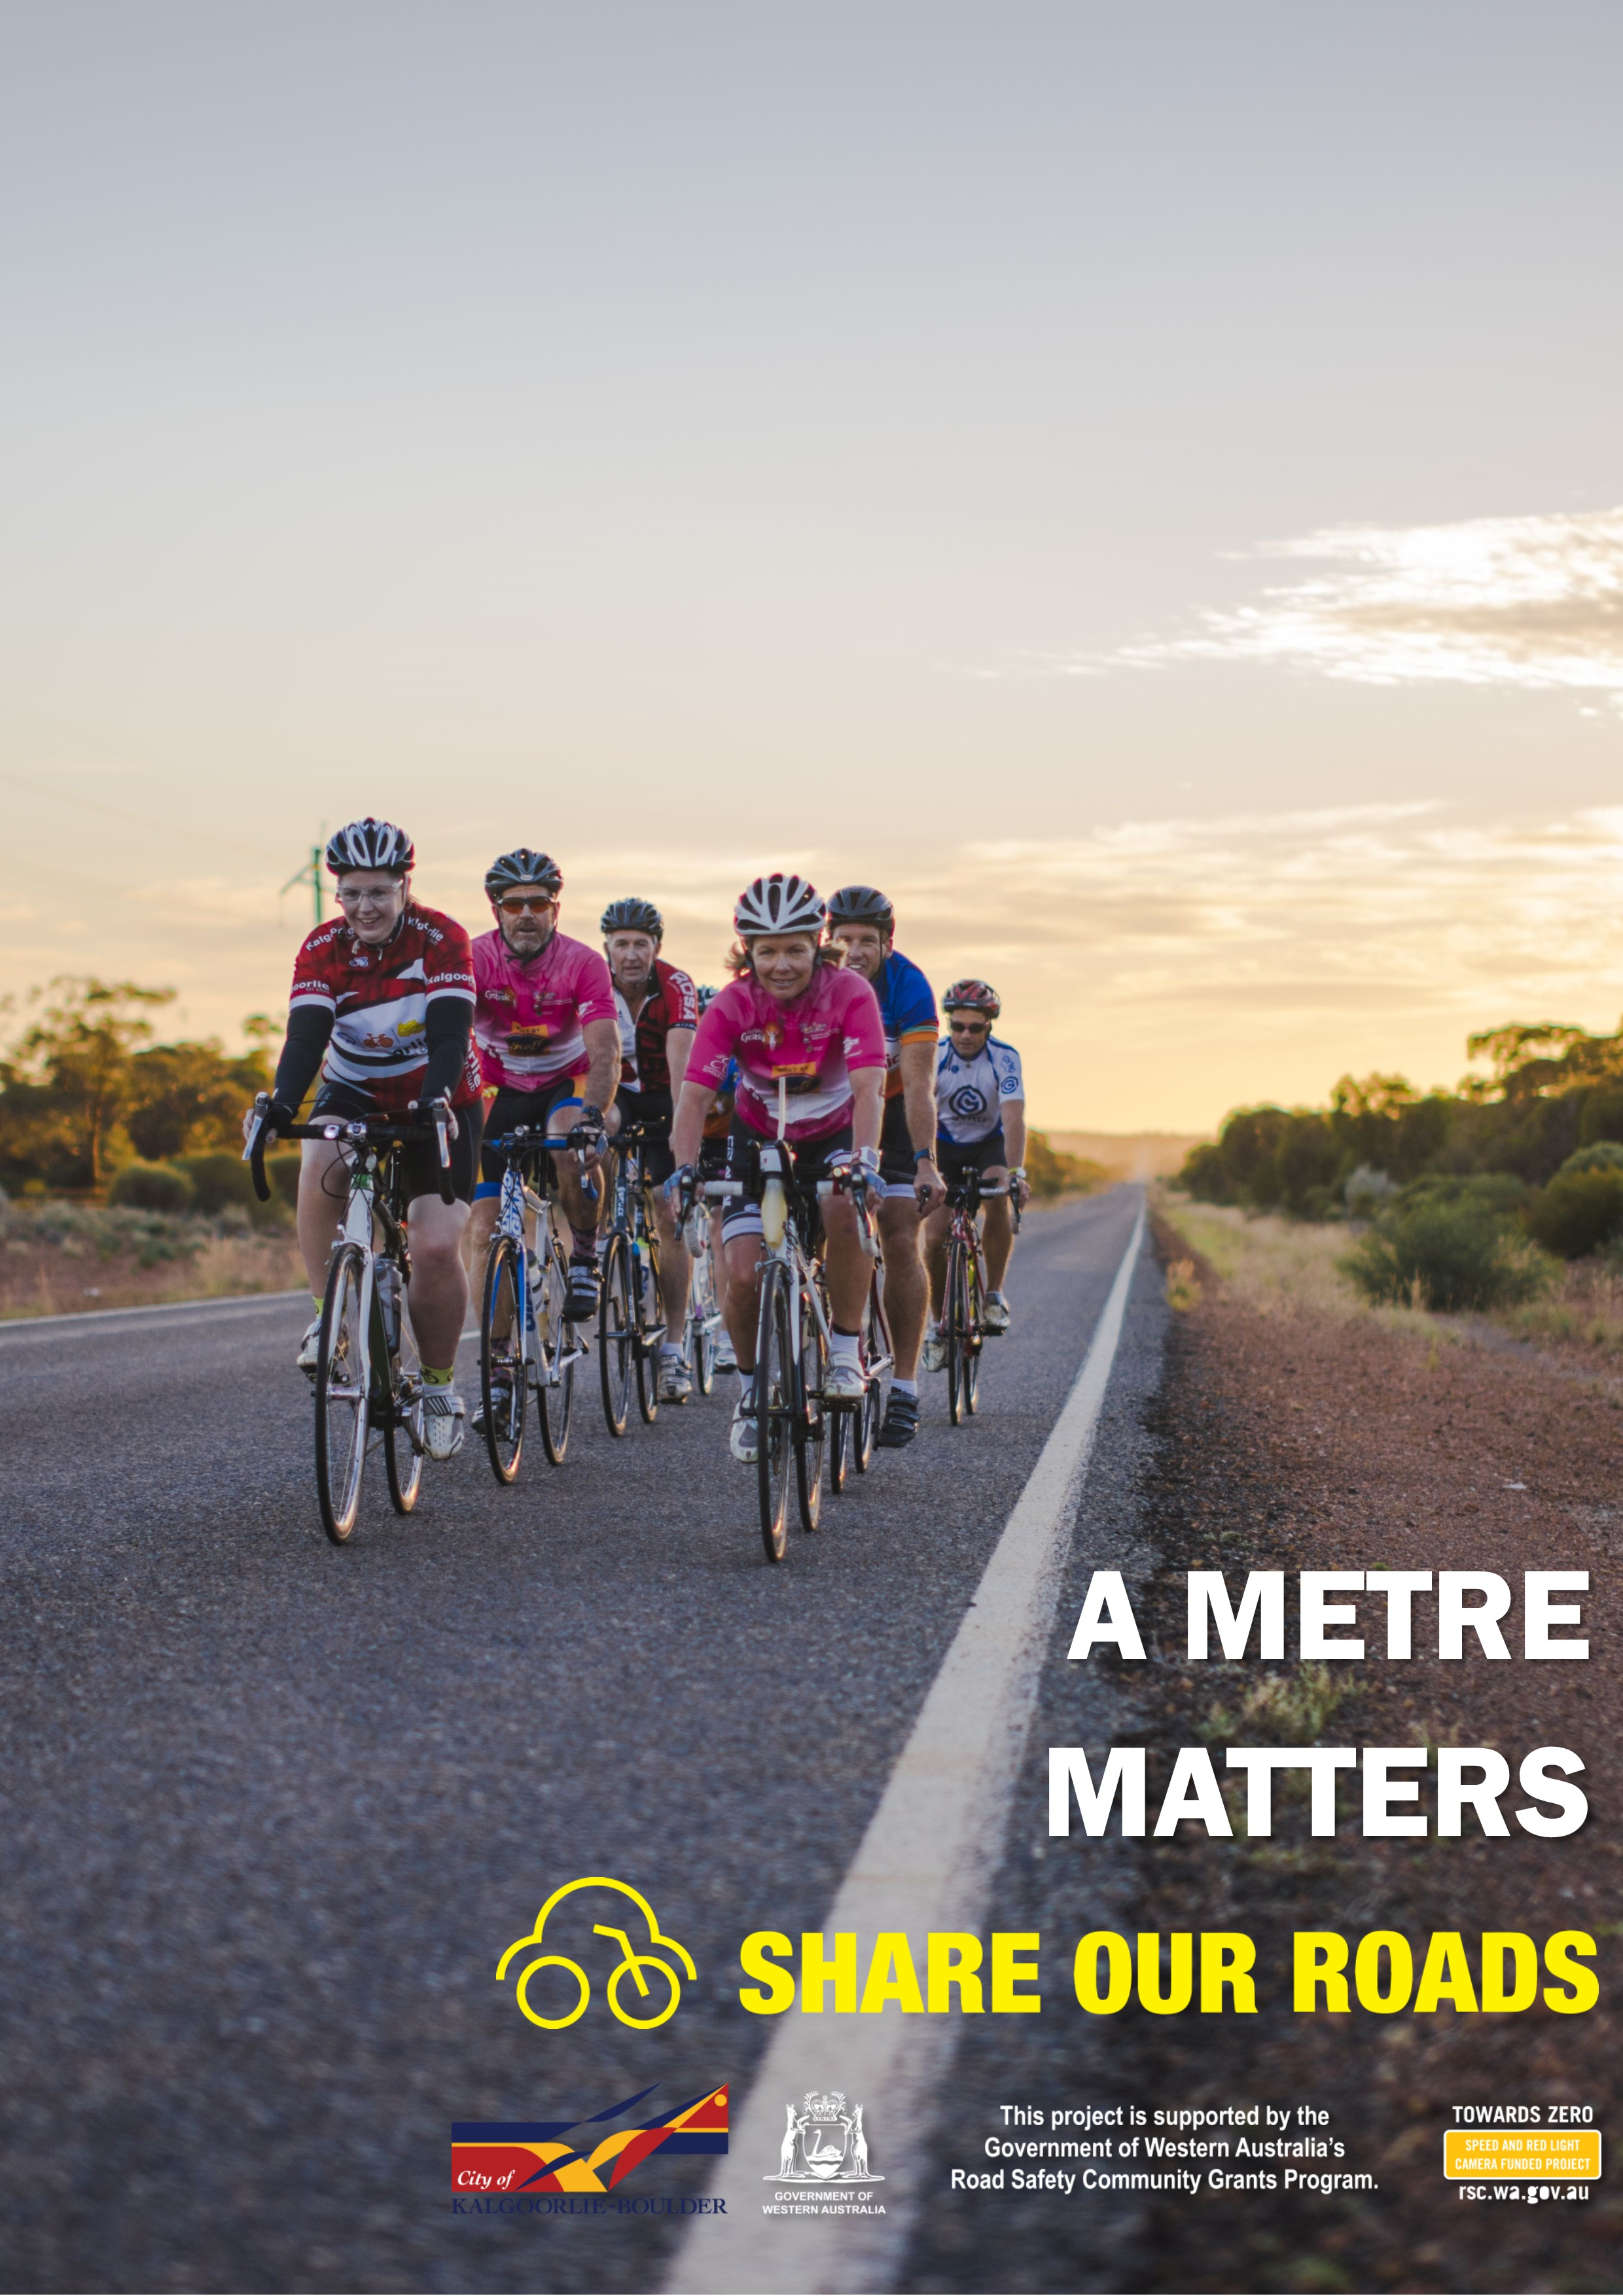 Kalgoorlie_BoulderShare_Our_Roads_-_Cyclists